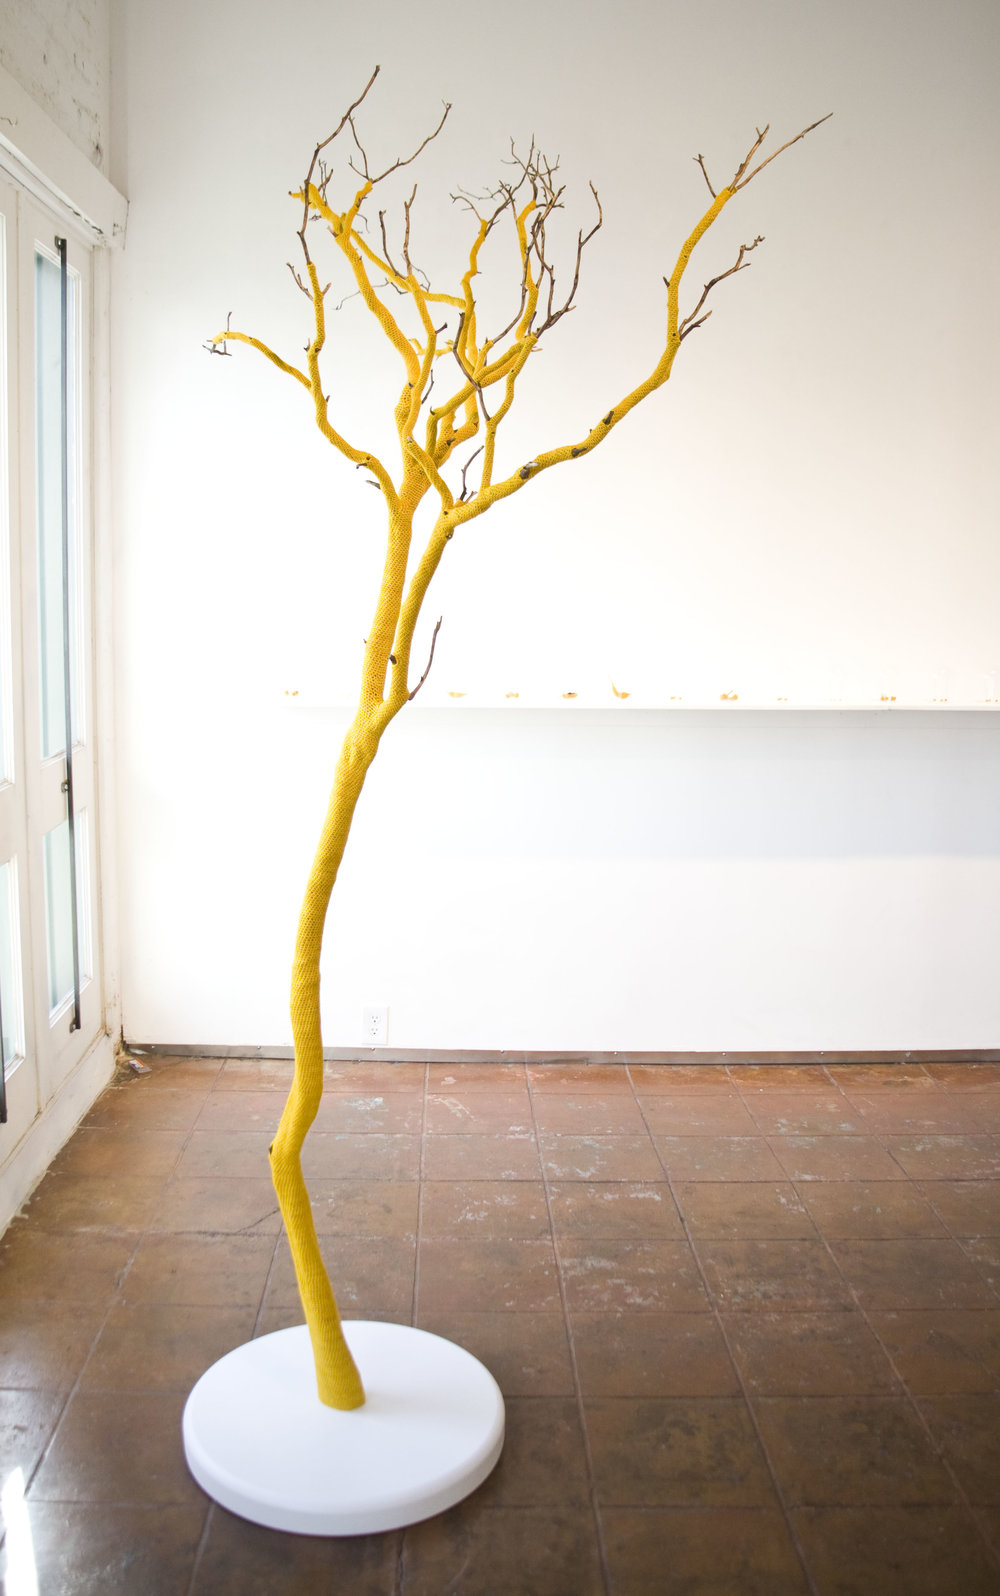 Esther Traugot Untitled (standing tree), 2014 tree limb, dyed bamboo cotton yarn 90 x 54 x 27 inches